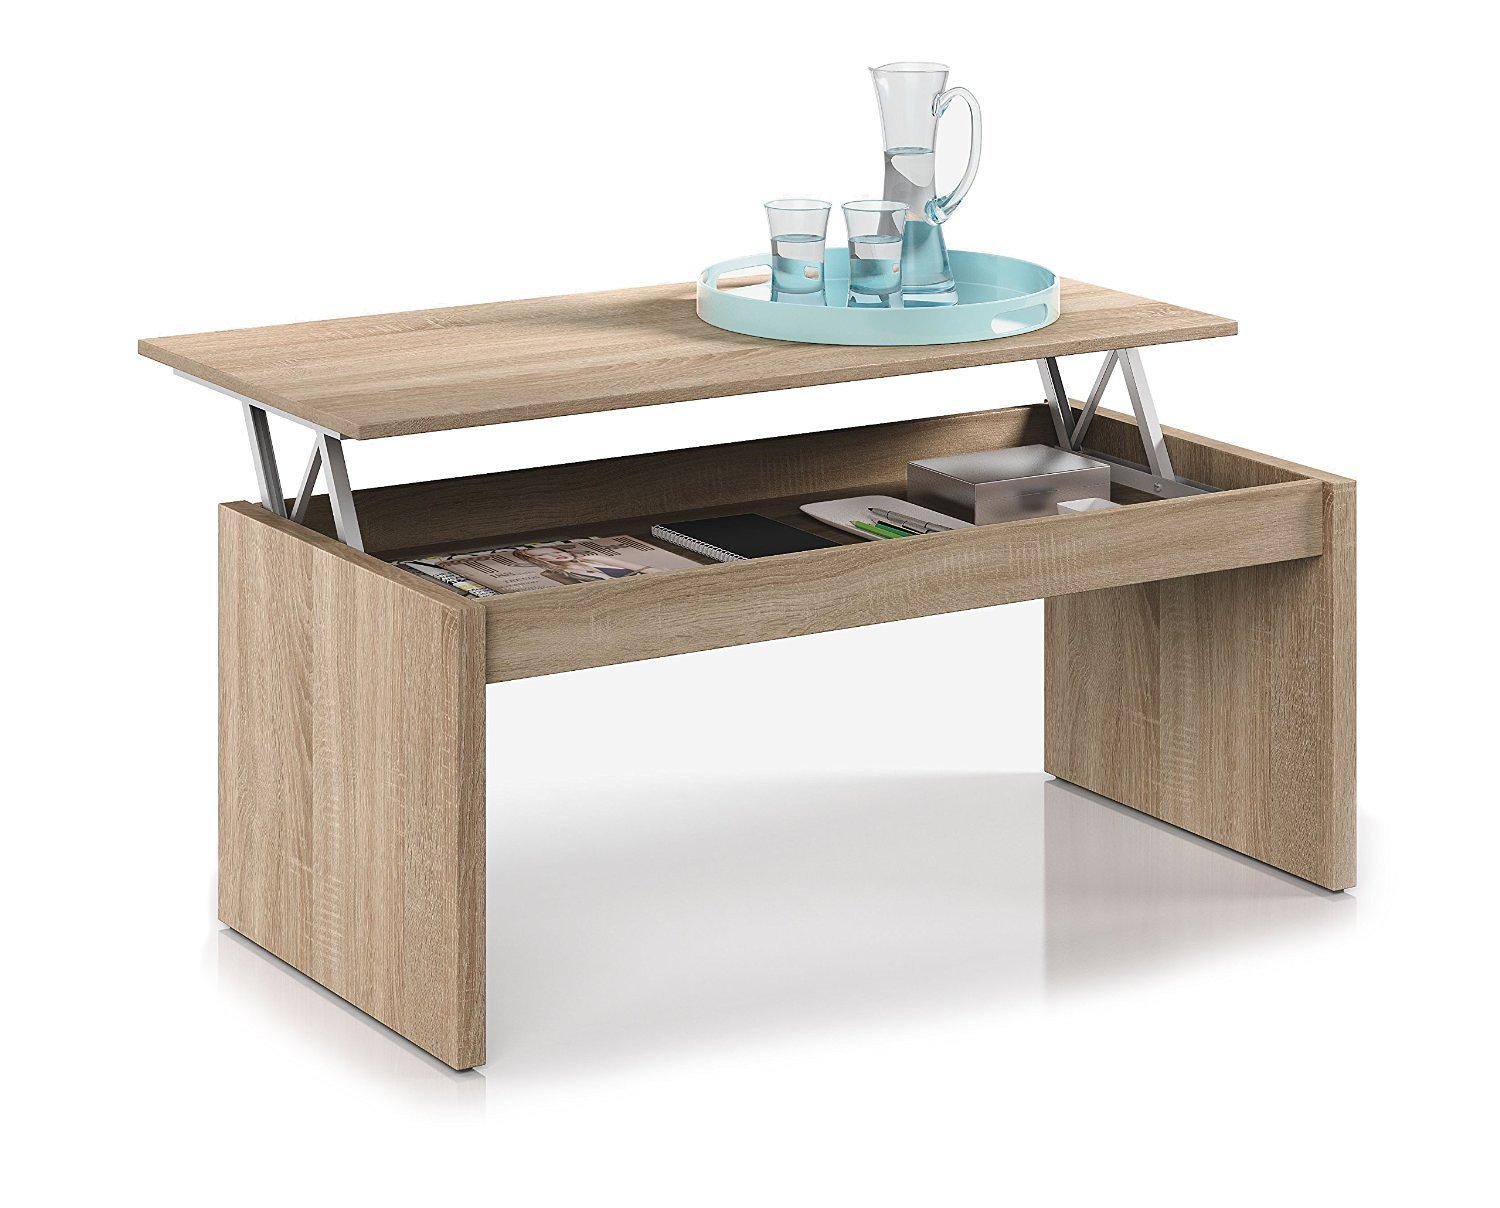 Fabulous habitdesign f table basse chne naturel avec for Table basse scandinave plateau relevable